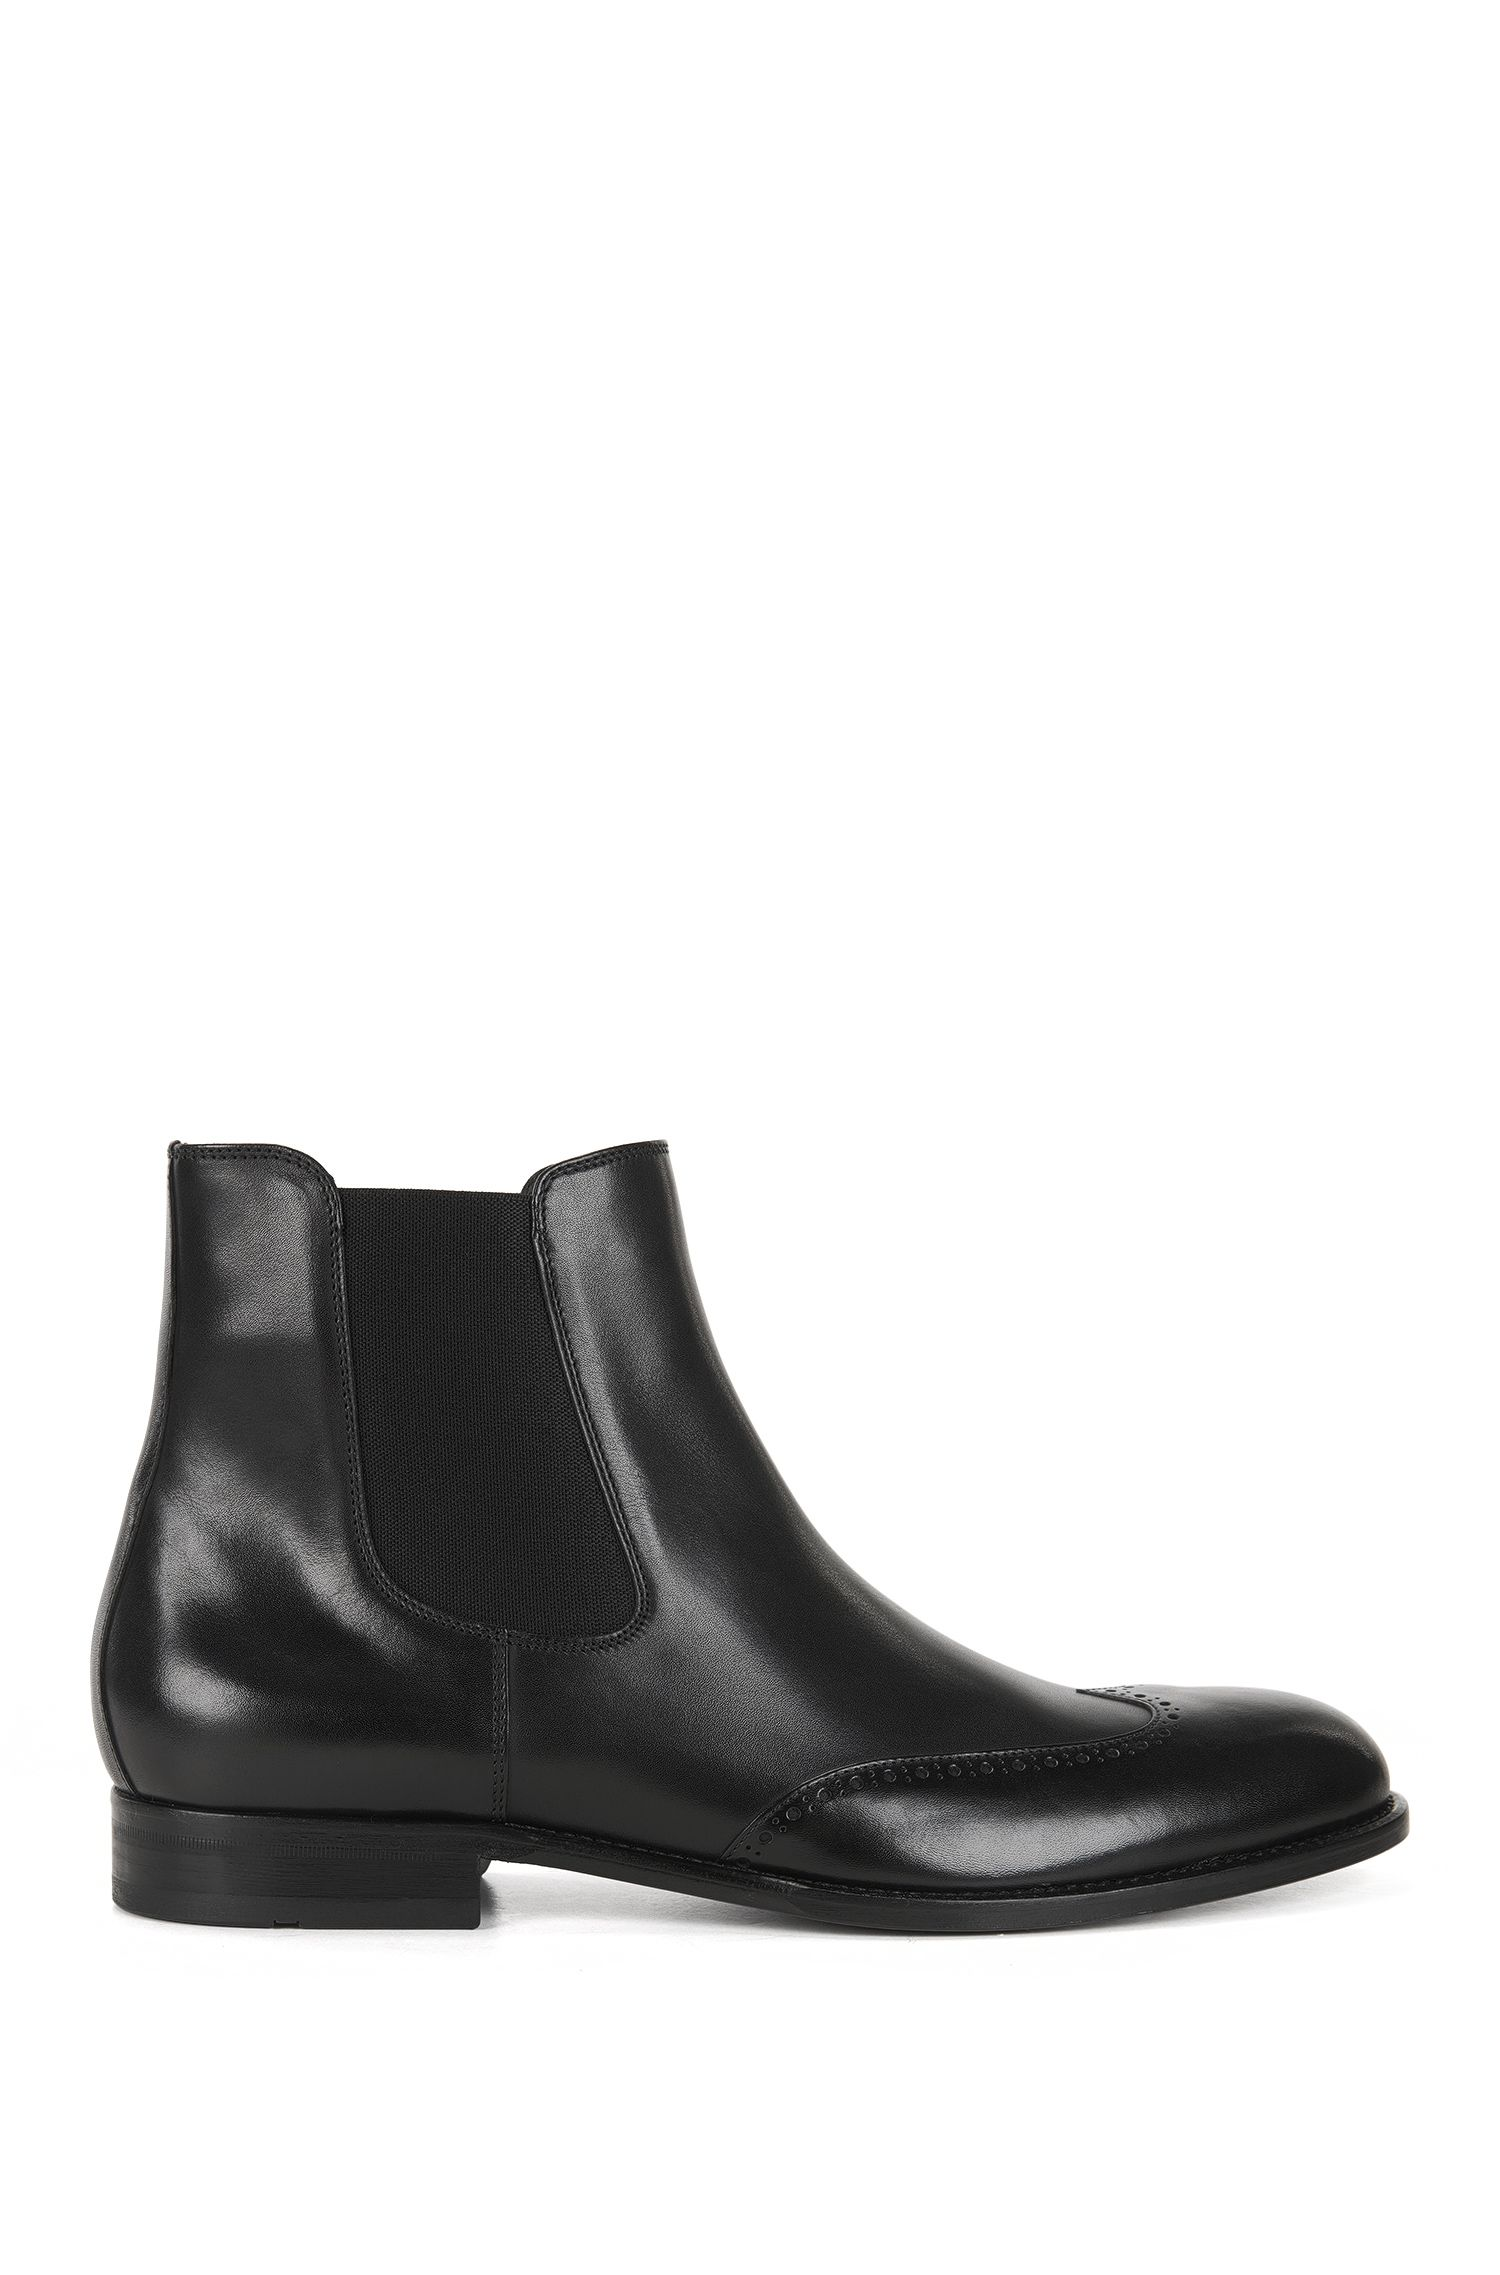 Leather Chelsea boots with wingtip details